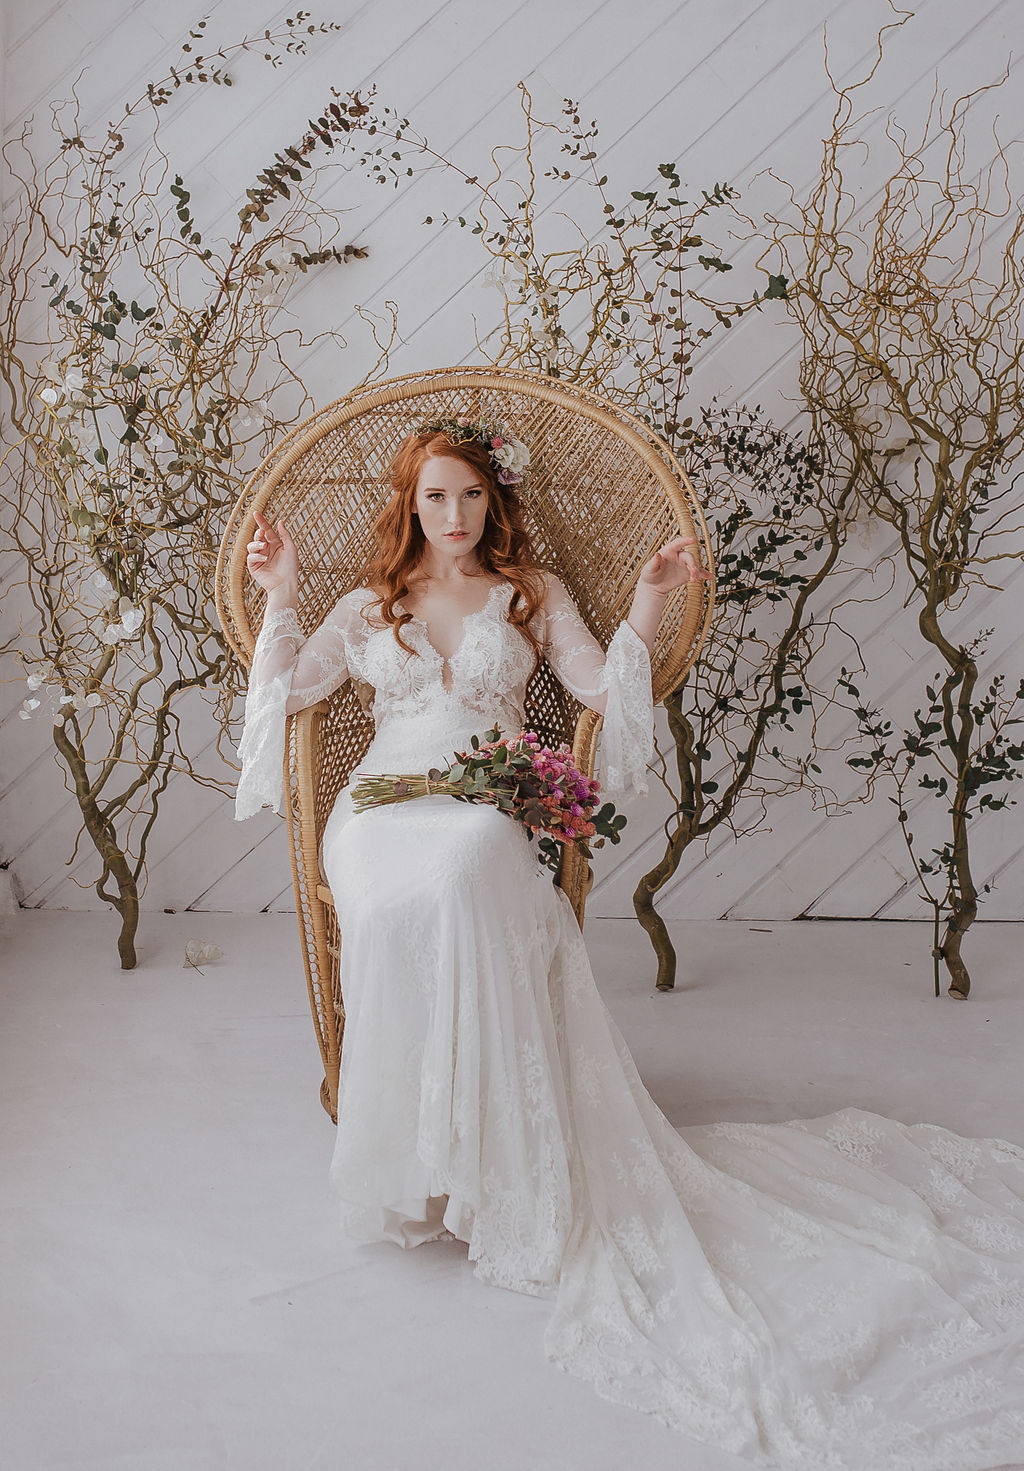 spokane bride peacock chair wedding